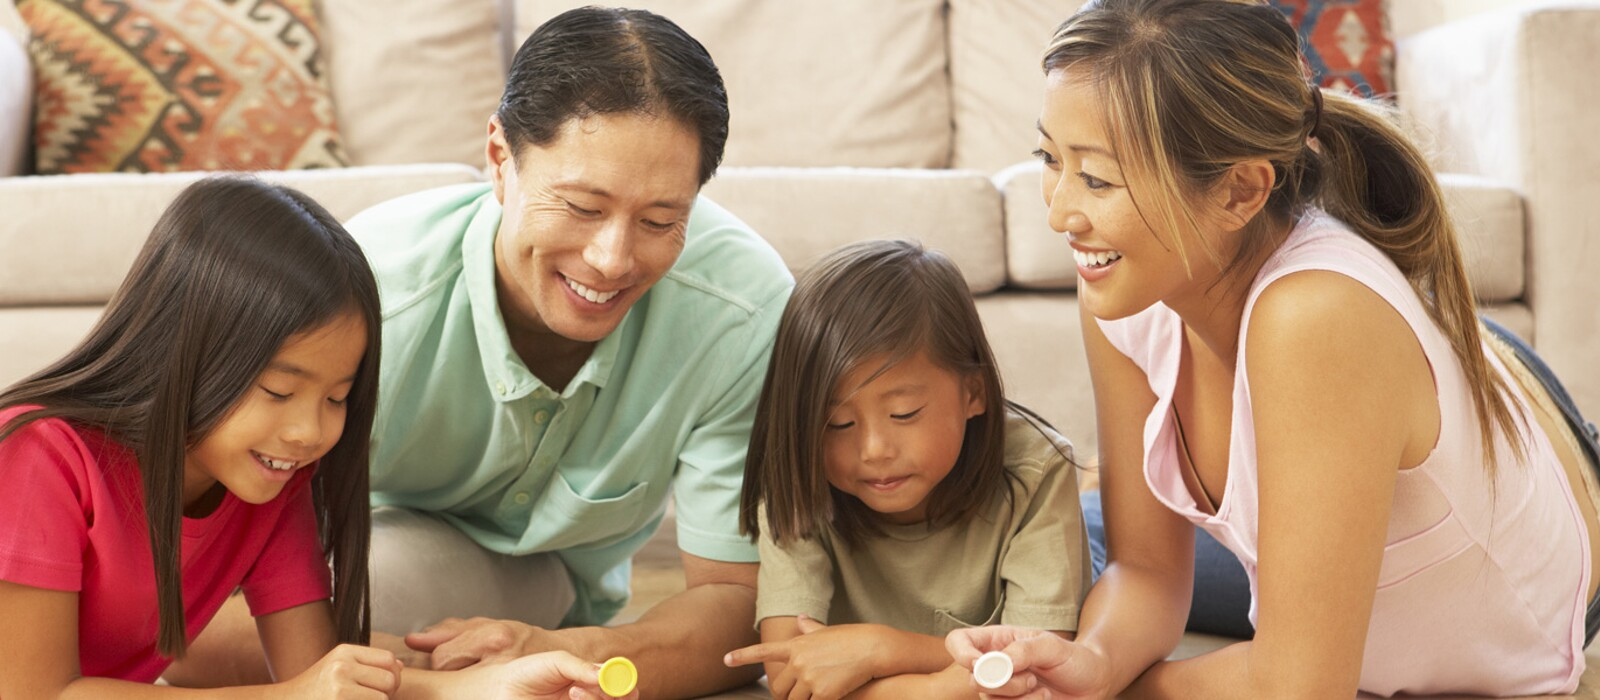 Why You Should Have Family Game Nights